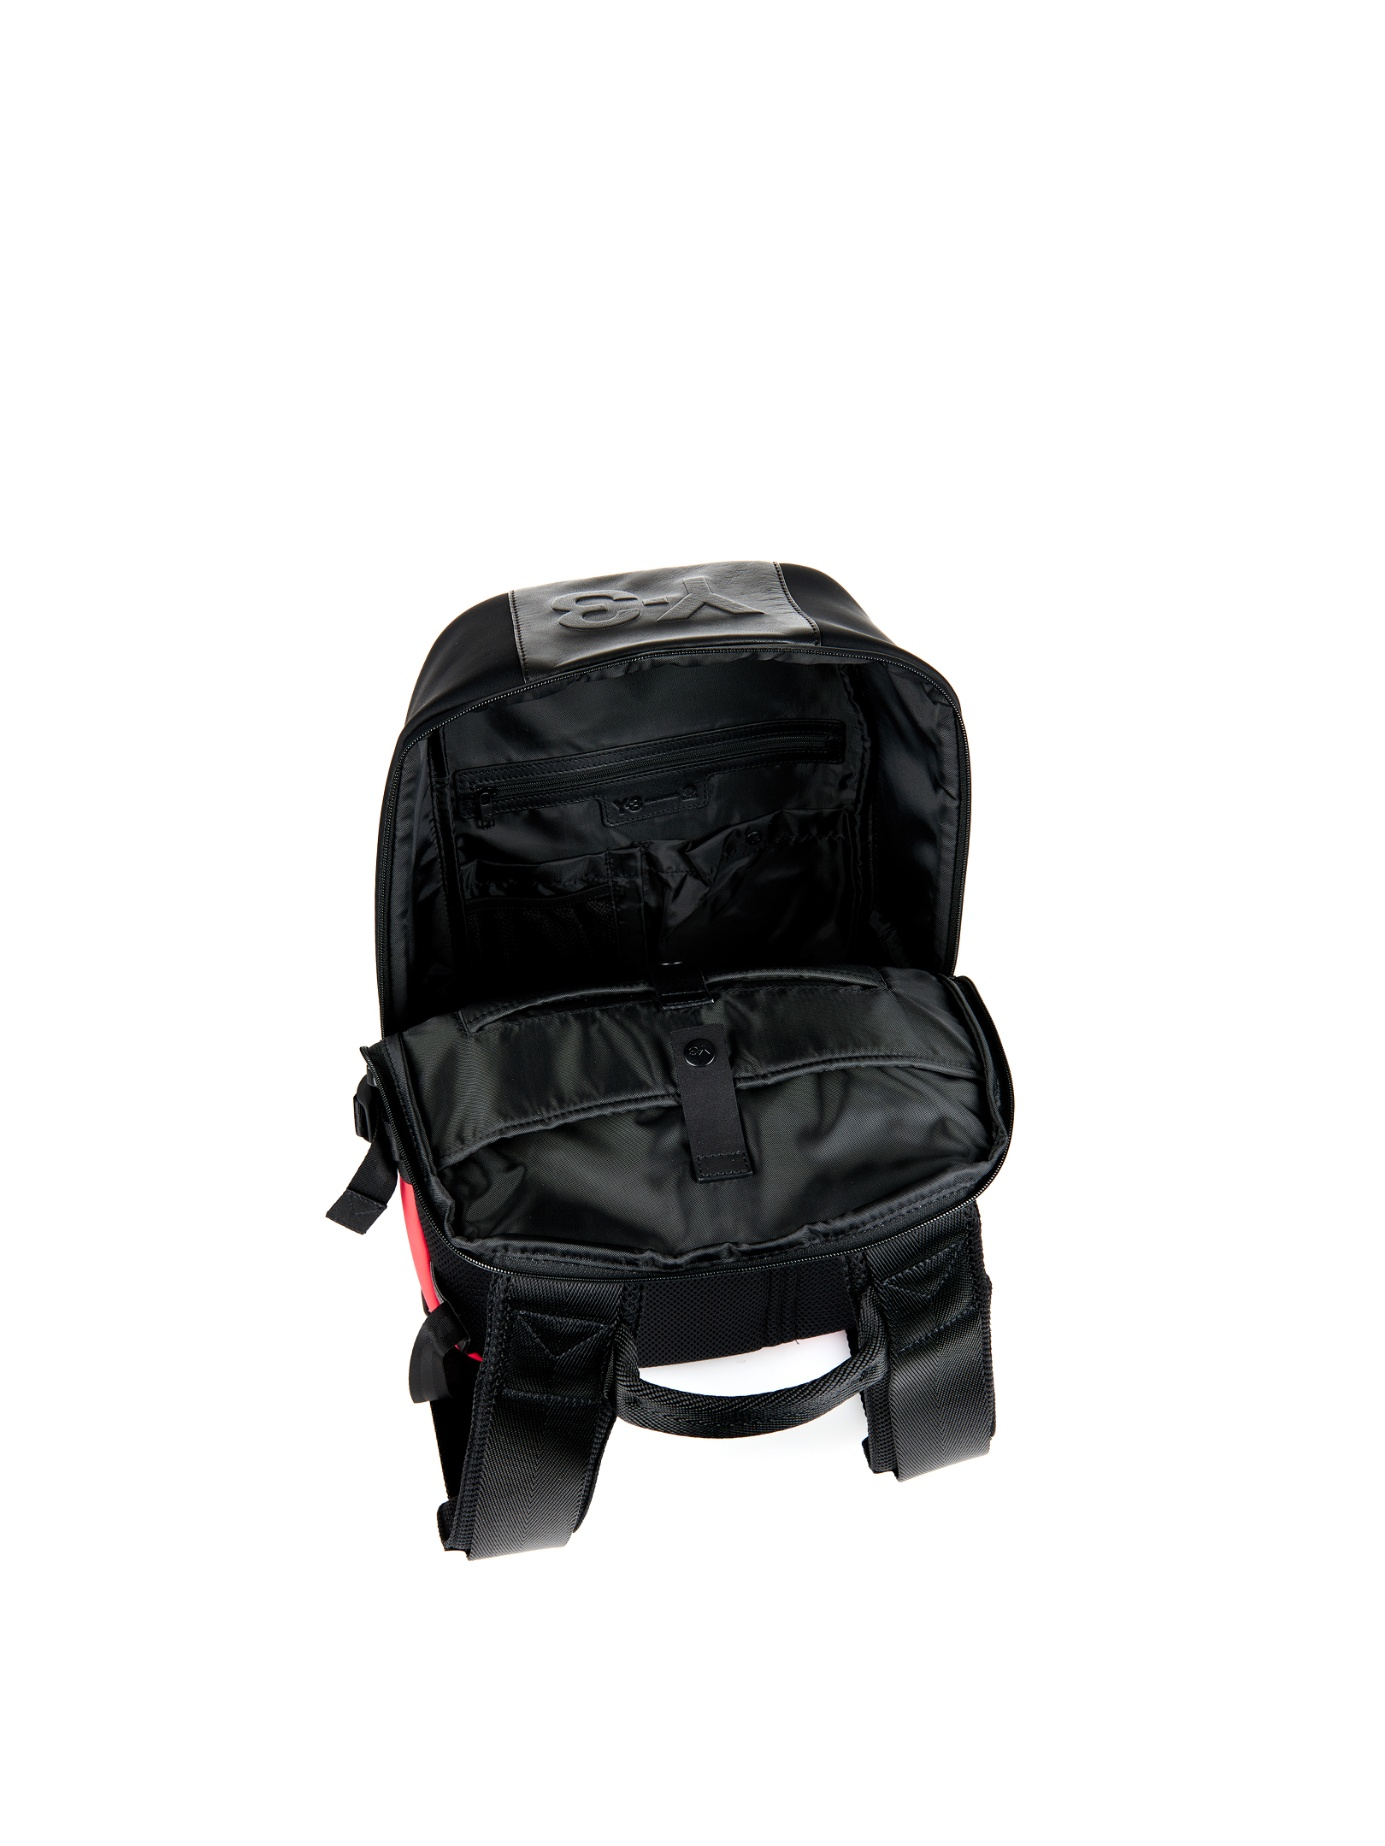 Y-3 Day Ii Neoprene And Leather Backpack in Black for Men - Lyst 72694e15528ab